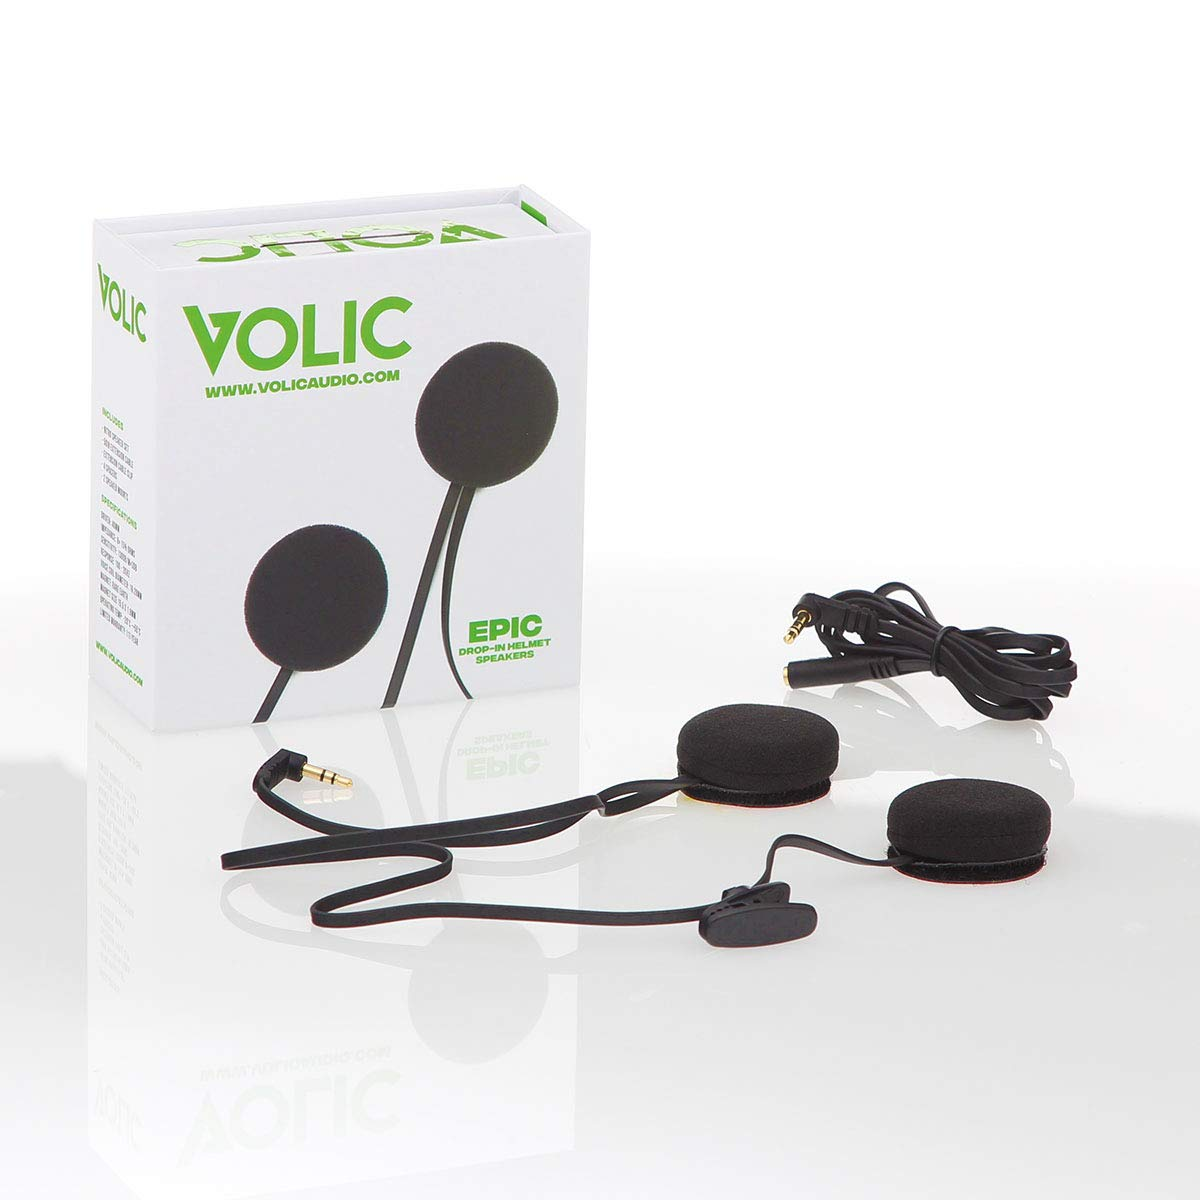 Volic Epic Drop-in Wired Helmet Speakers for Motorcycles, Snowboarding, Mountain Biking, Skiing, Bikes, Sports and More